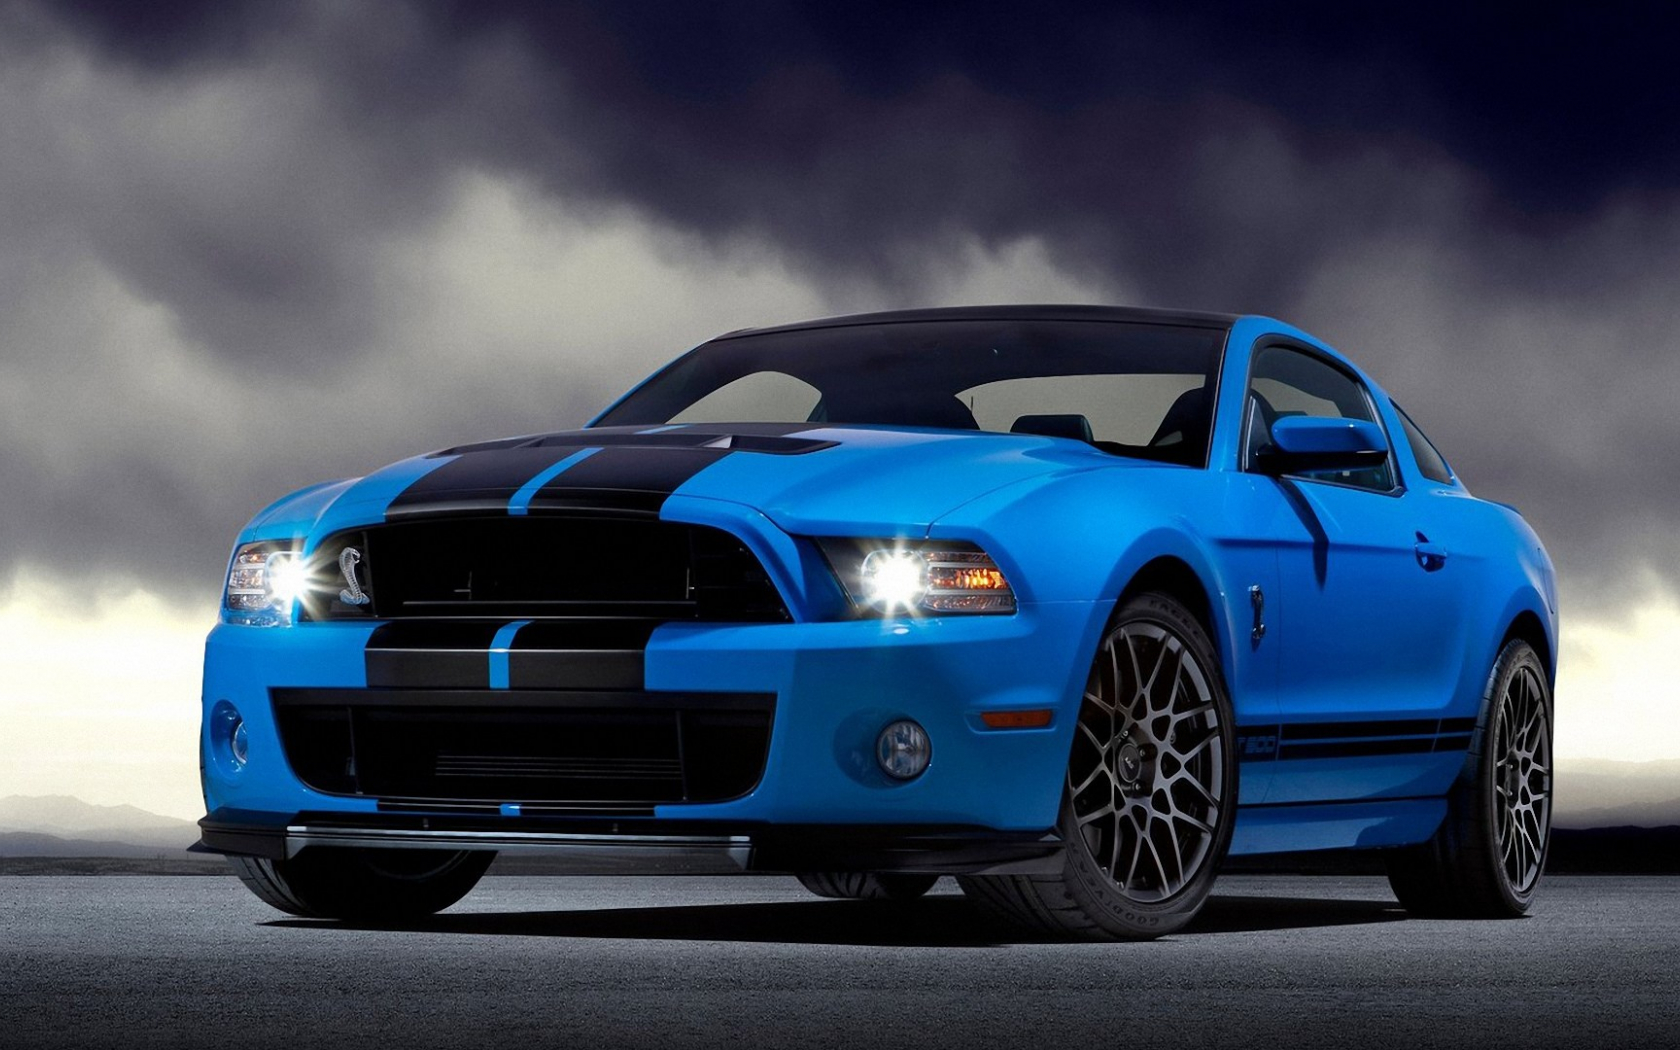 Free Download Ford Mustang Shelby Gt500 03 1920x1080 Wallpapersford Mustang Shelby 1920x1080 For Your Desktop Mobile Tablet Explore 37 Mustang Wallpaper 1920x1080 67 Mustang Wallpaper Ford Gt Wallpaper 1920x1080 67 Mustang Coupe Wallpaper